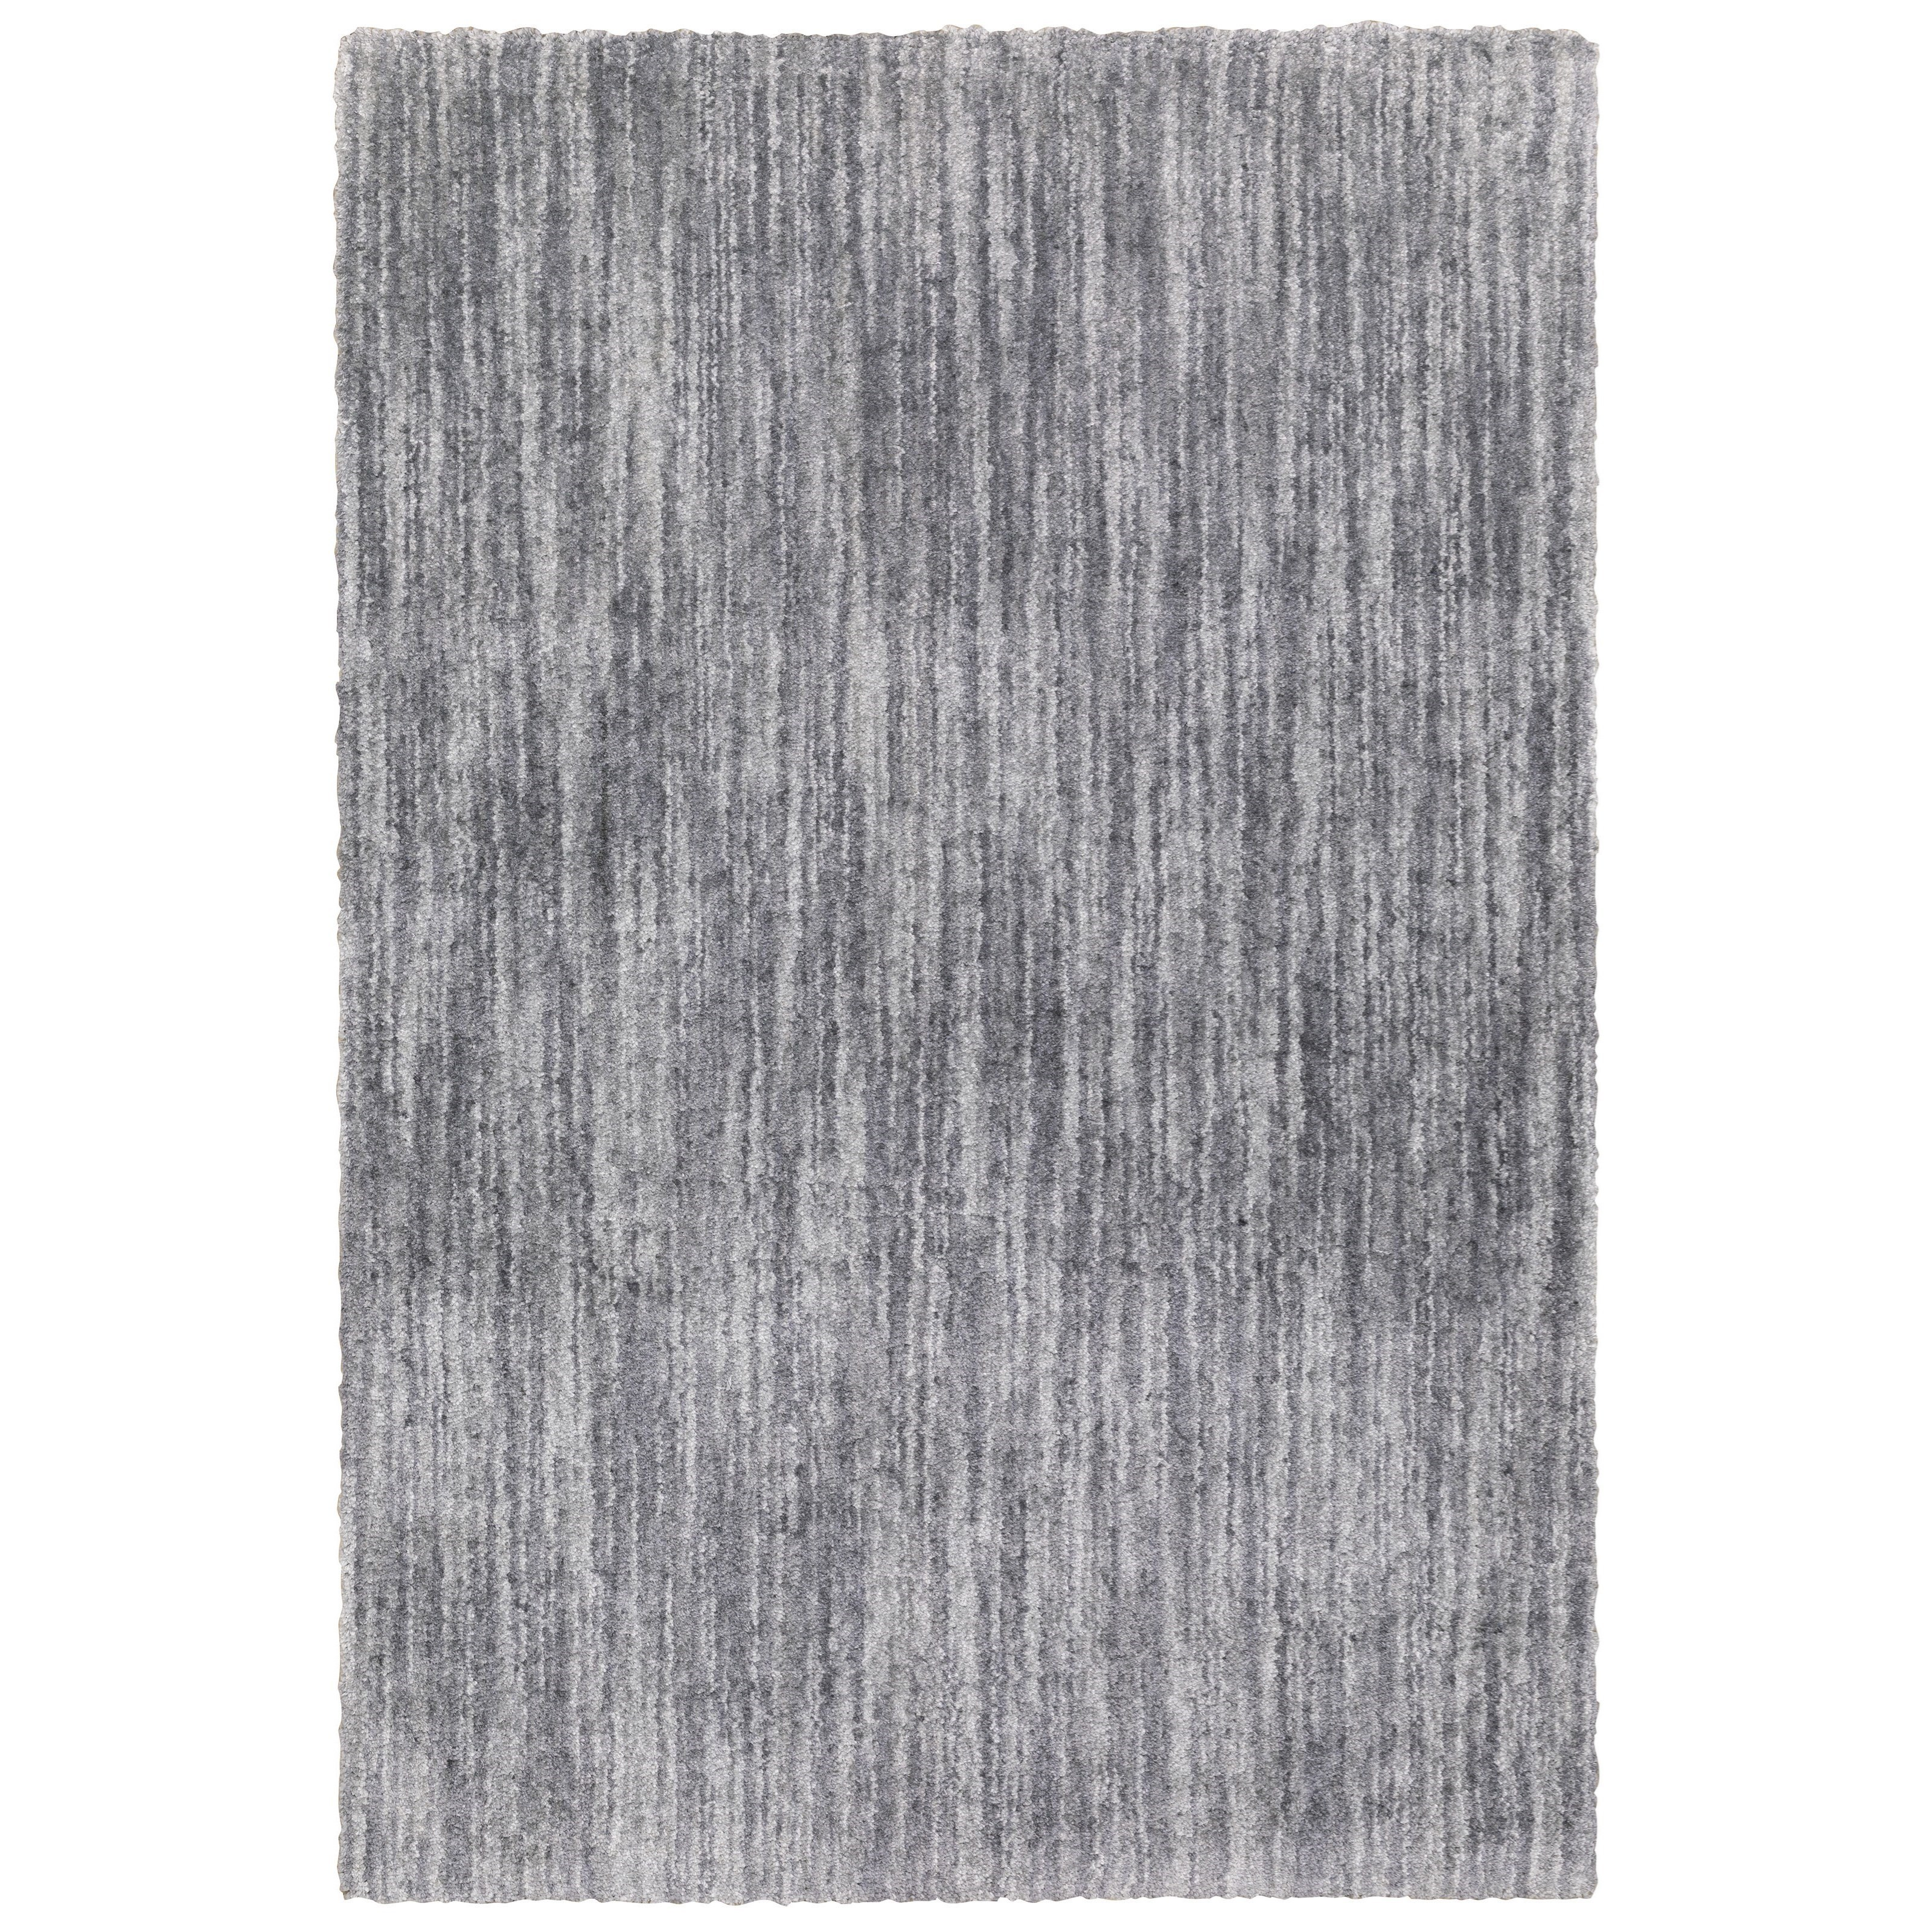 """ASPEN 6' 7"""" X  9' 6"""" Rectangle Rug by Oriental Weavers at Novello Home Furnishings"""